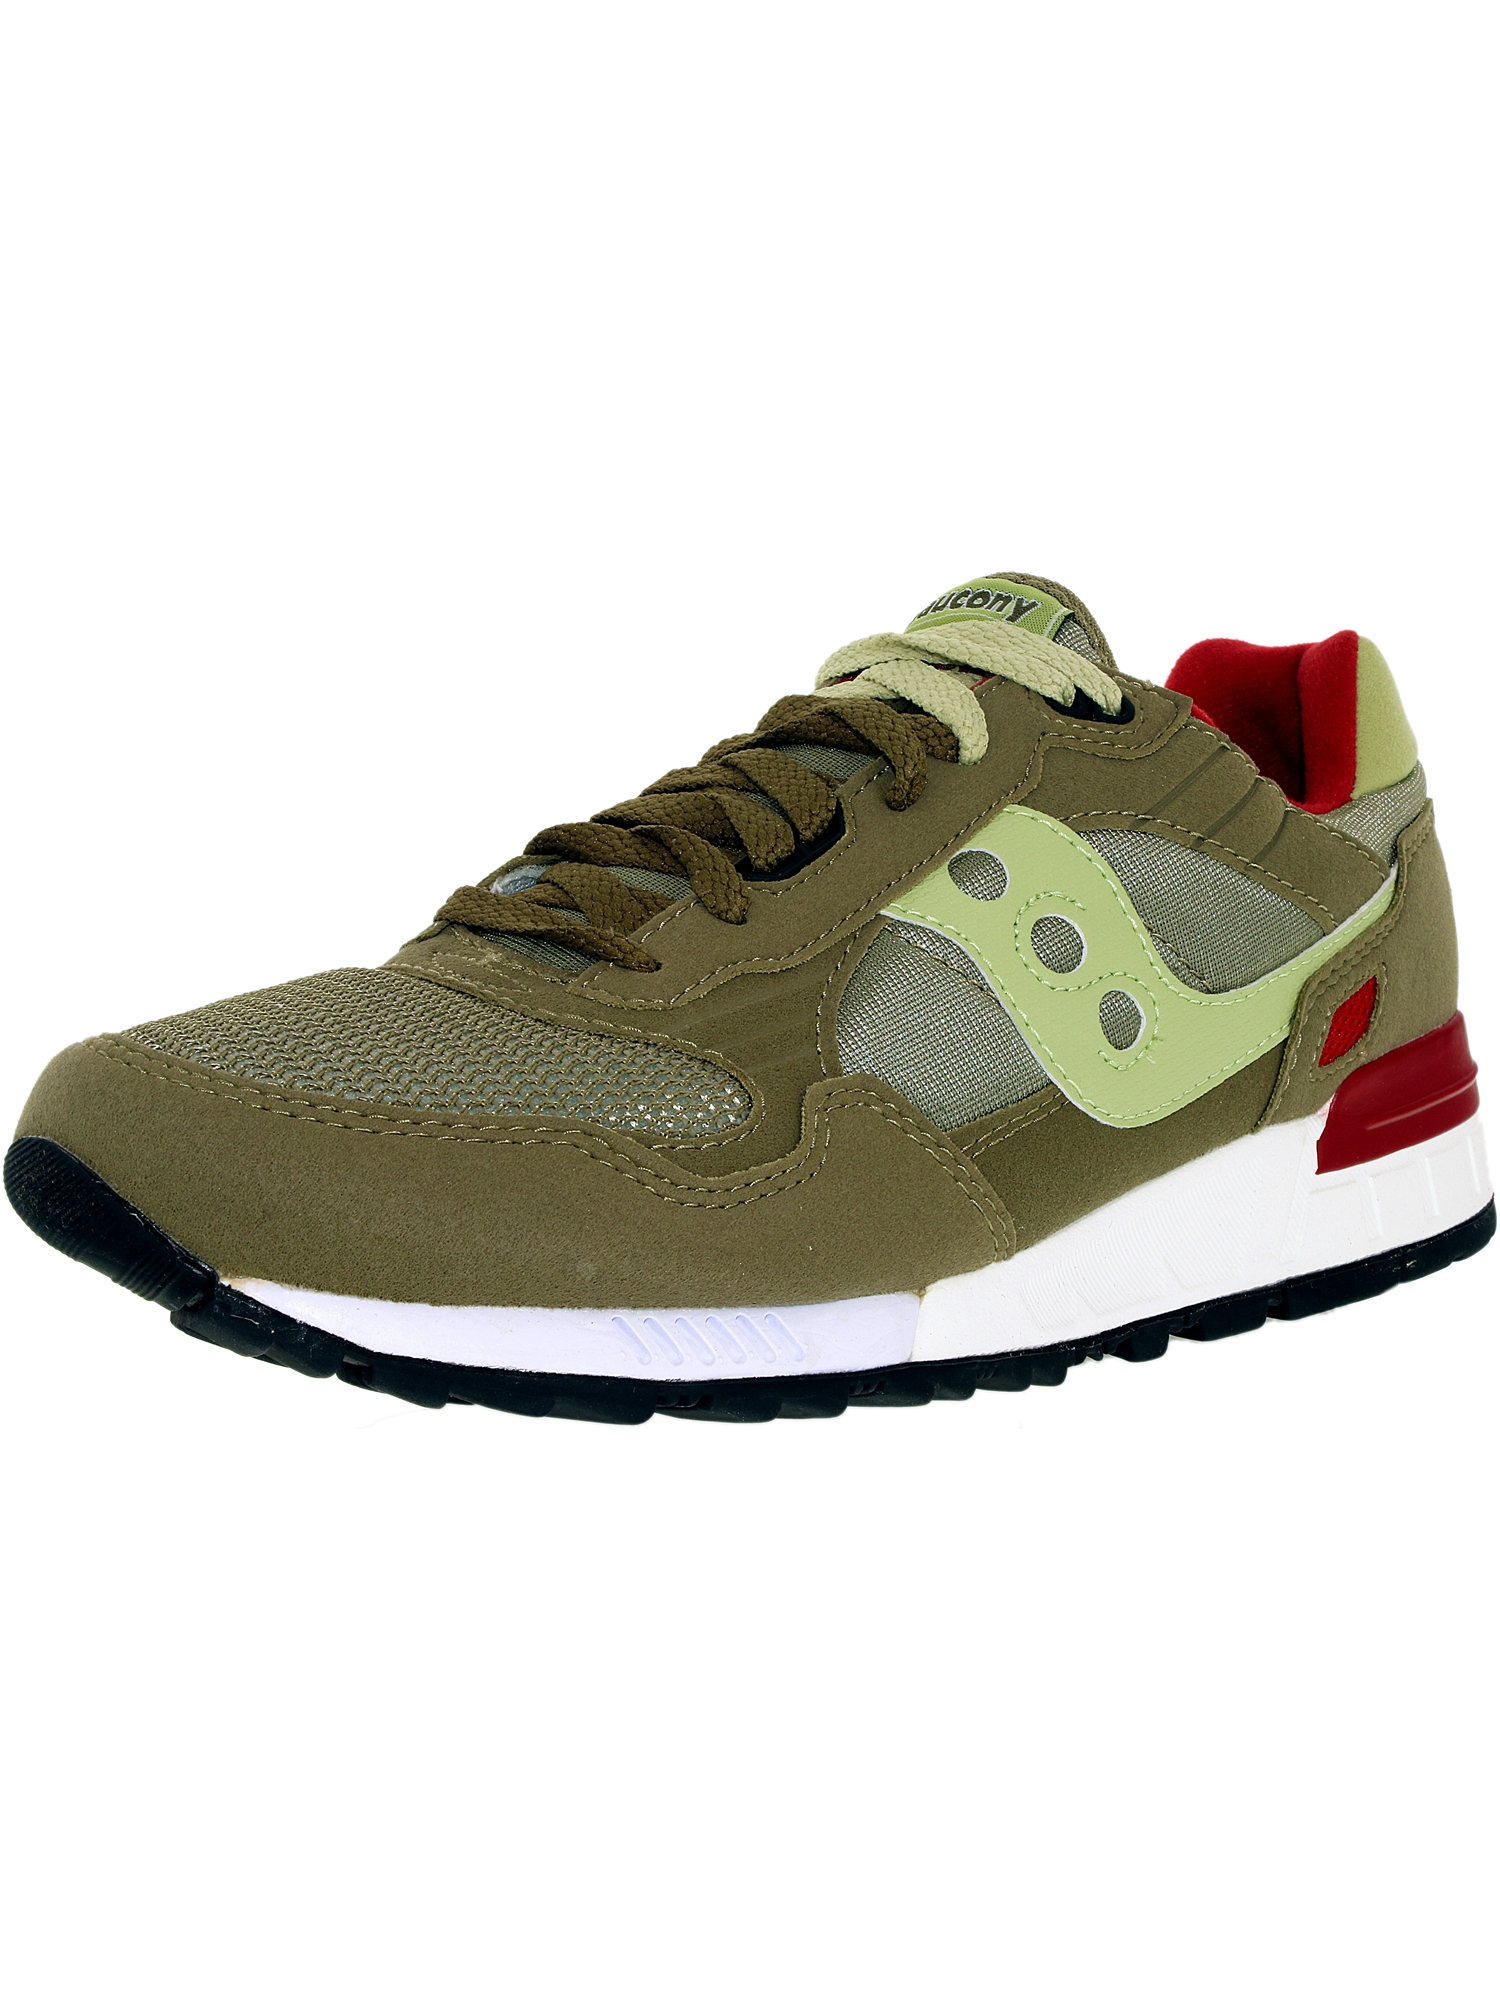 Saucony Women's Shadow 5000 Olive Ankle-High Leather Fashion Sneaker - 10M